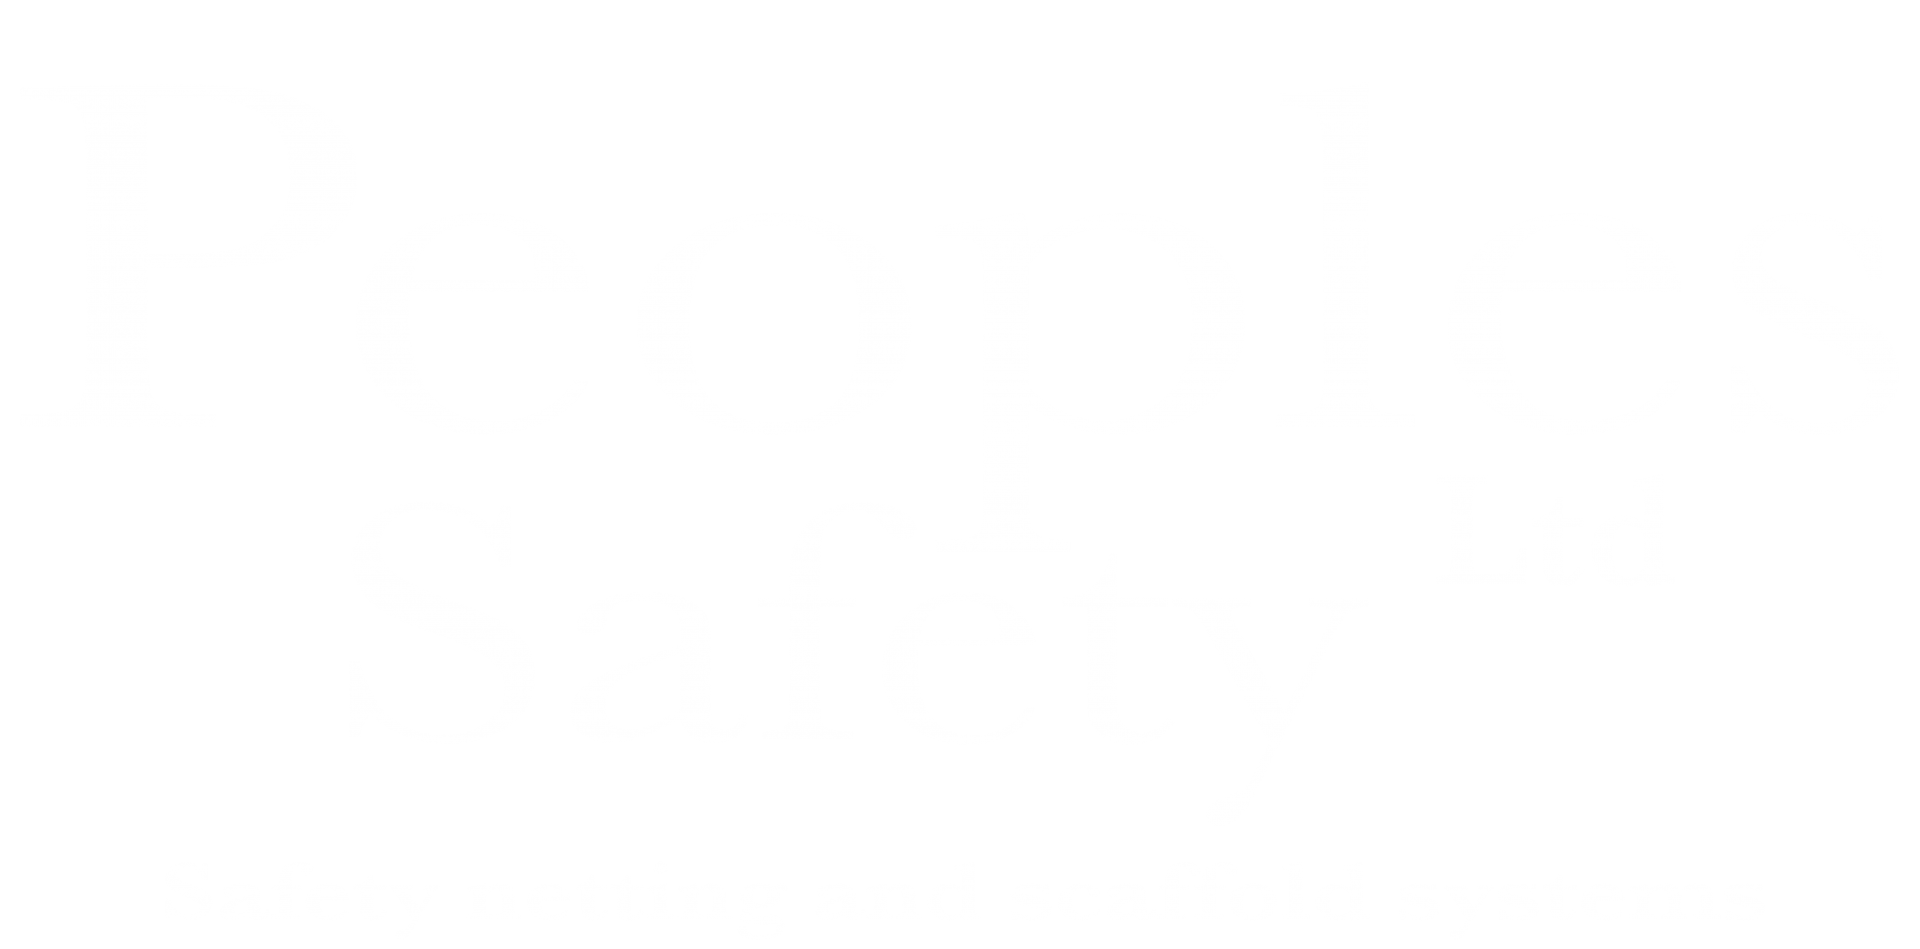 Peoples Safety: High-quality safety systems